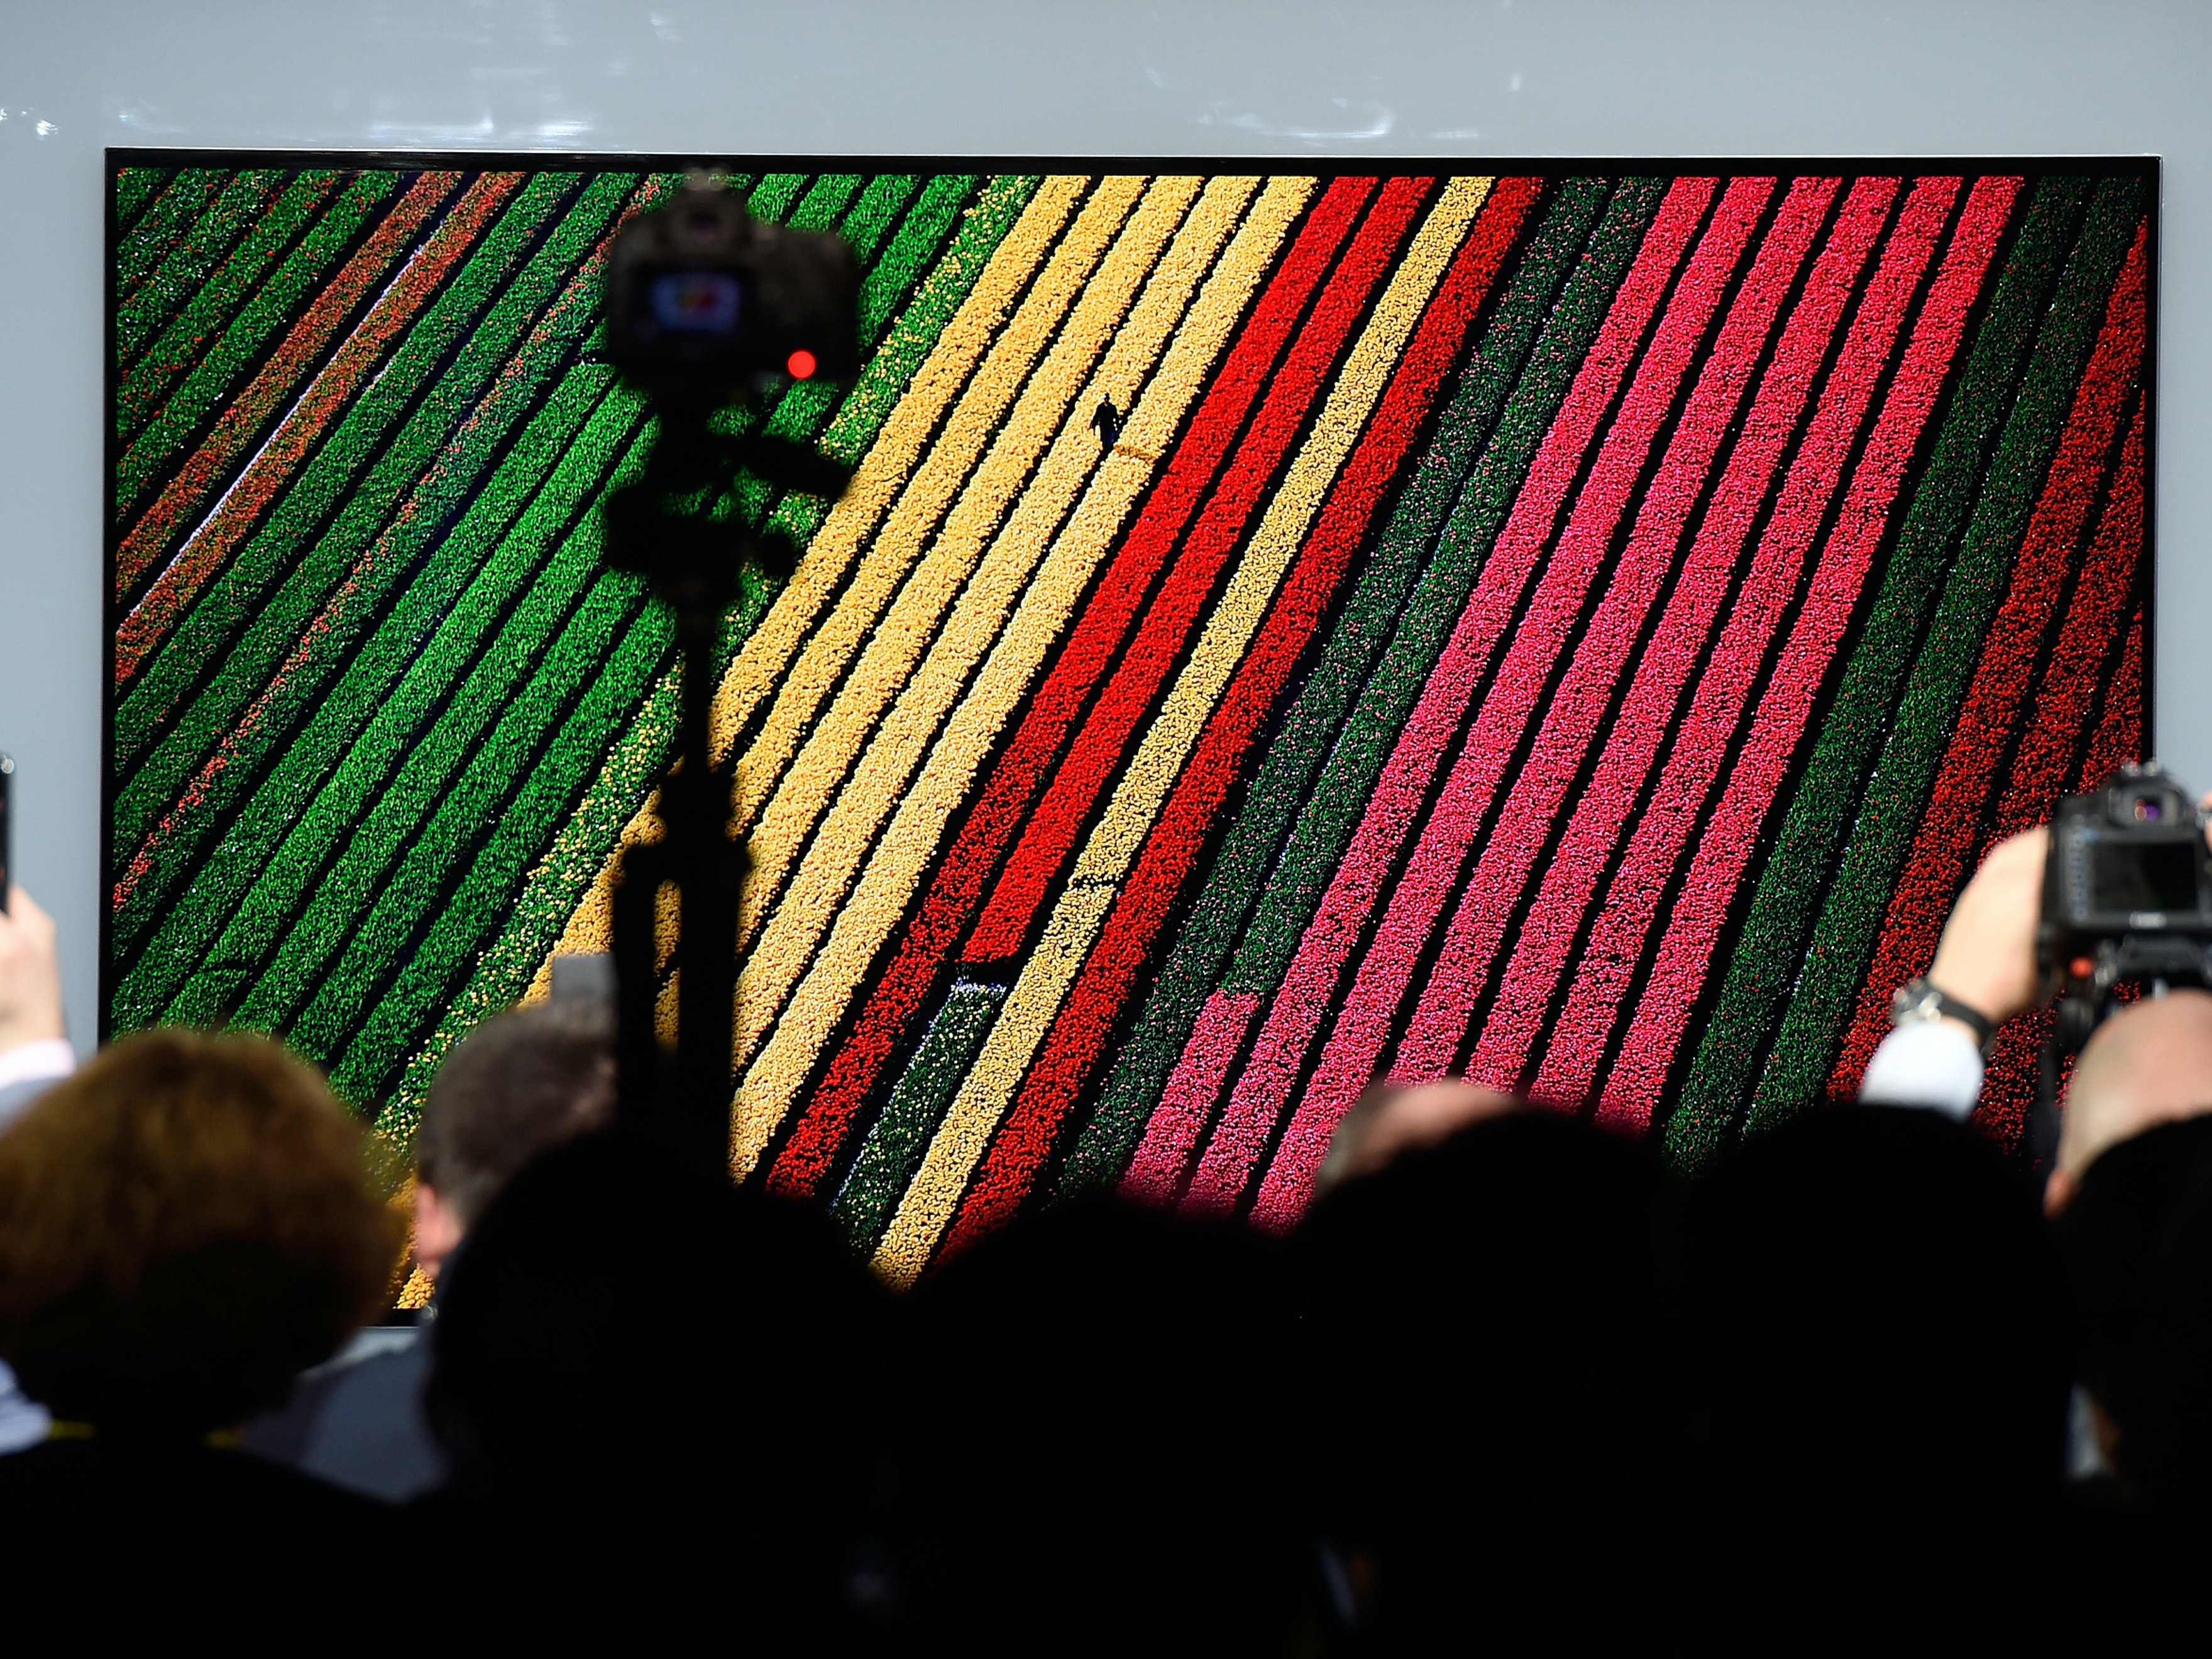 LAS VEGAS, NV - JANUARY 04:  Members of the media photograph the LG Signature OLED TV W during a LG press event for CES 2017 at the Mandalay Bay Convention Center on January 4, 2017 in Las Vegas, Nevada. CES, the world's largest annual consumer technology trade show, runs from January 5-8 and is expected to feature 3,800 exhibitors showing off their latest products and services to more than 165,000 attendees.  (Photo by David Becker/Getty Images)